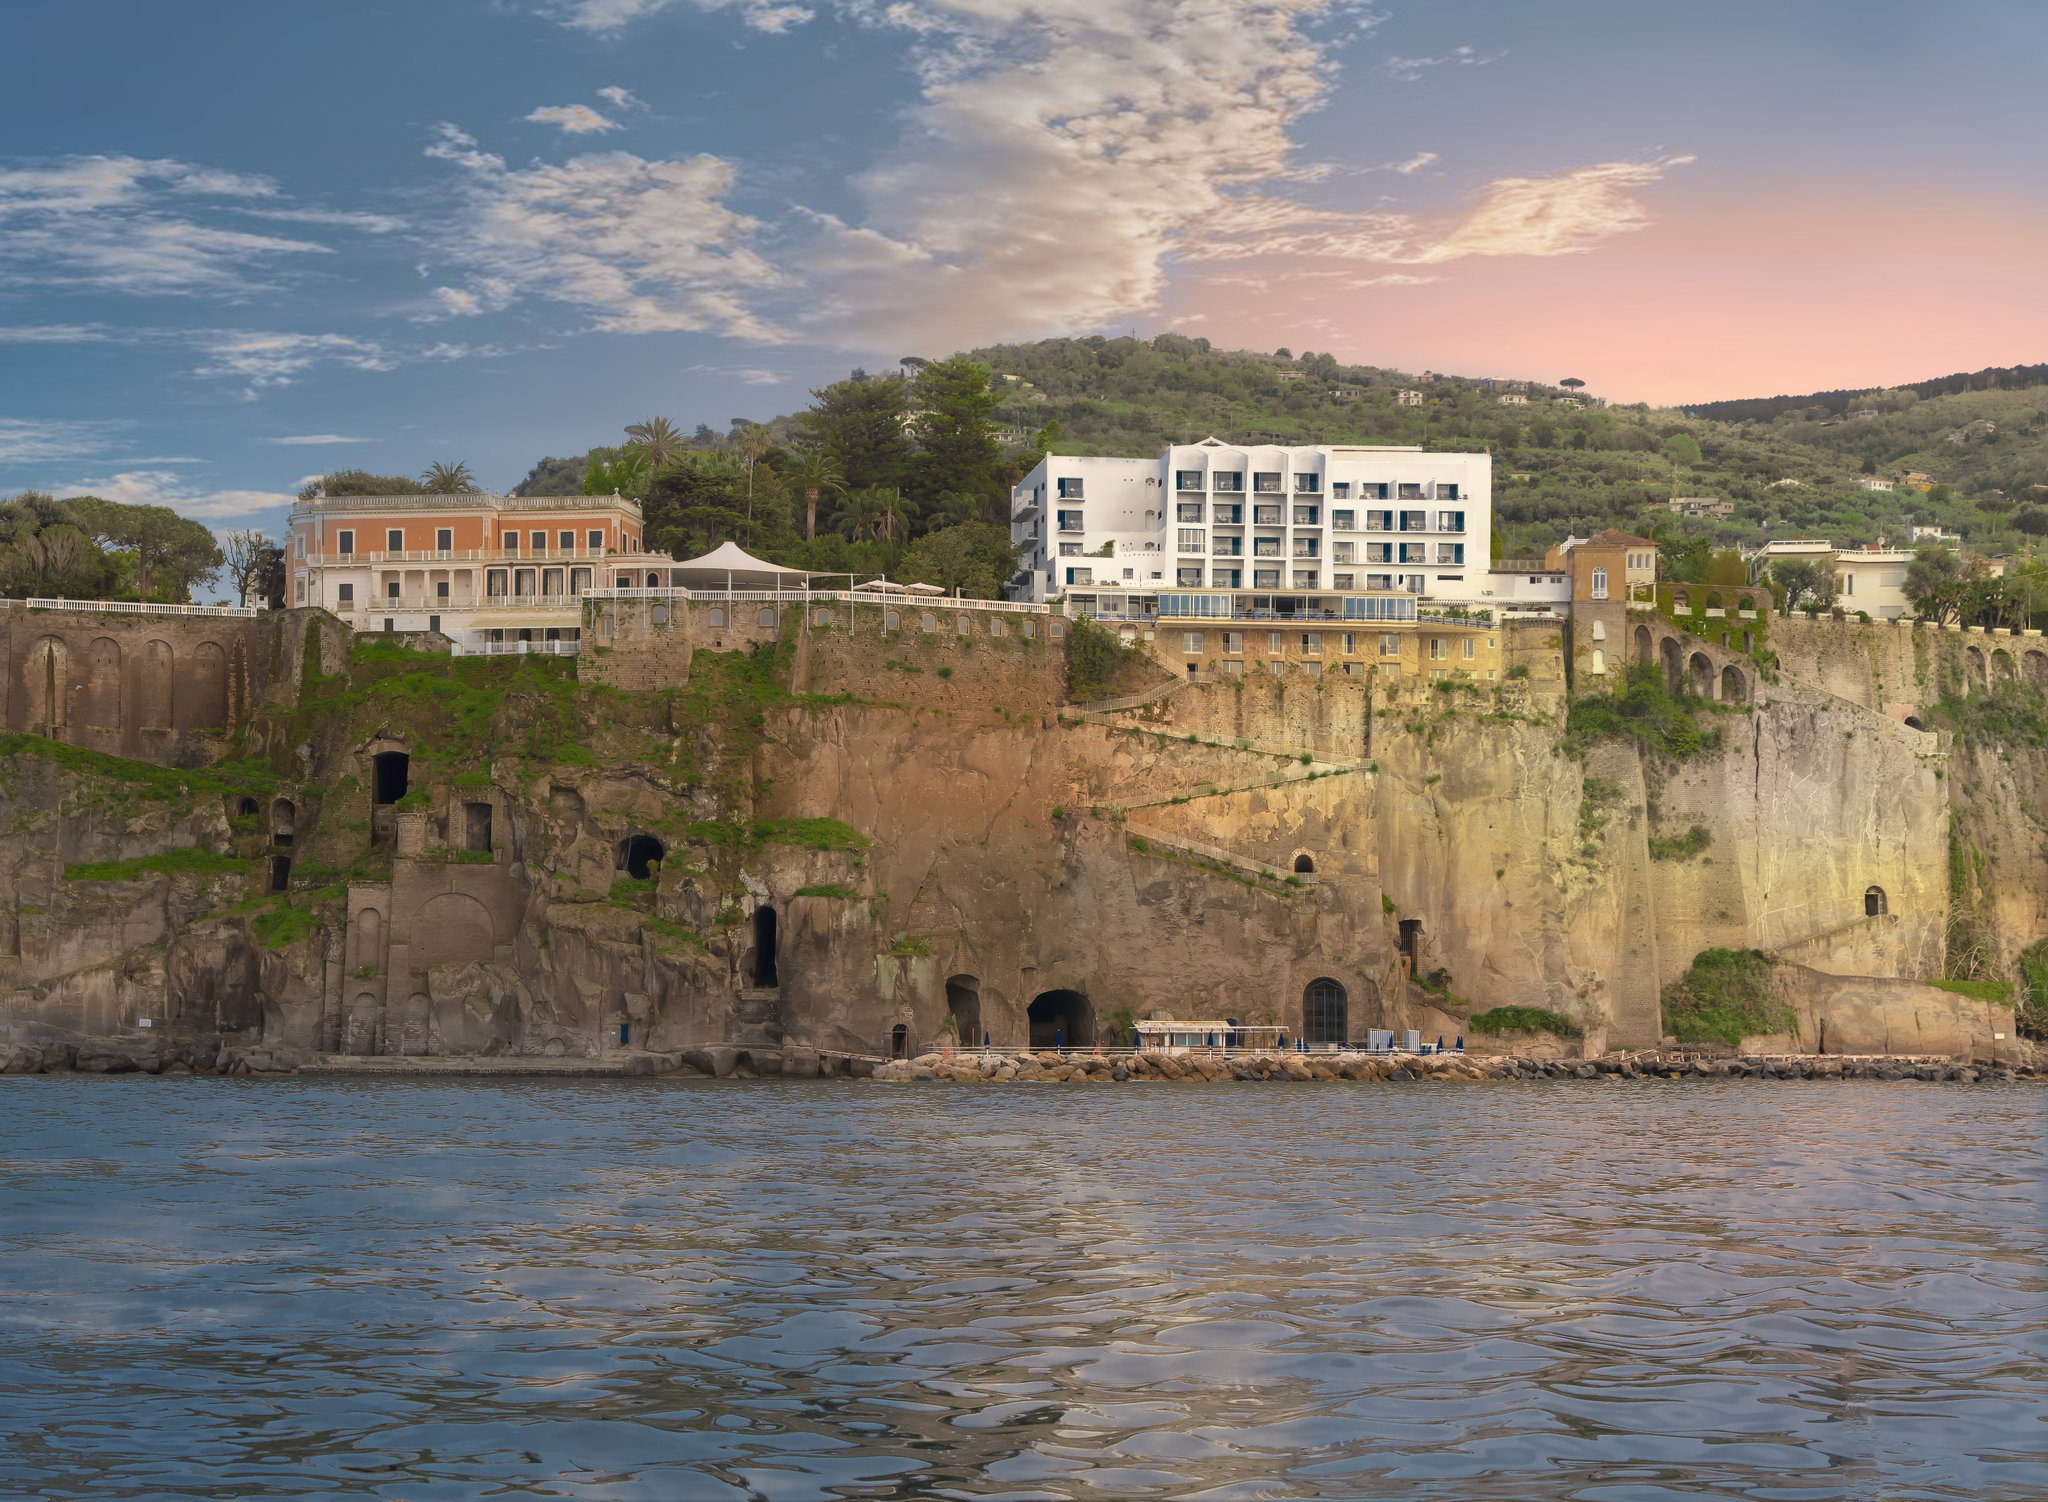 Parco Dei Principi Hotel First Class Sorrento Italy Hotels